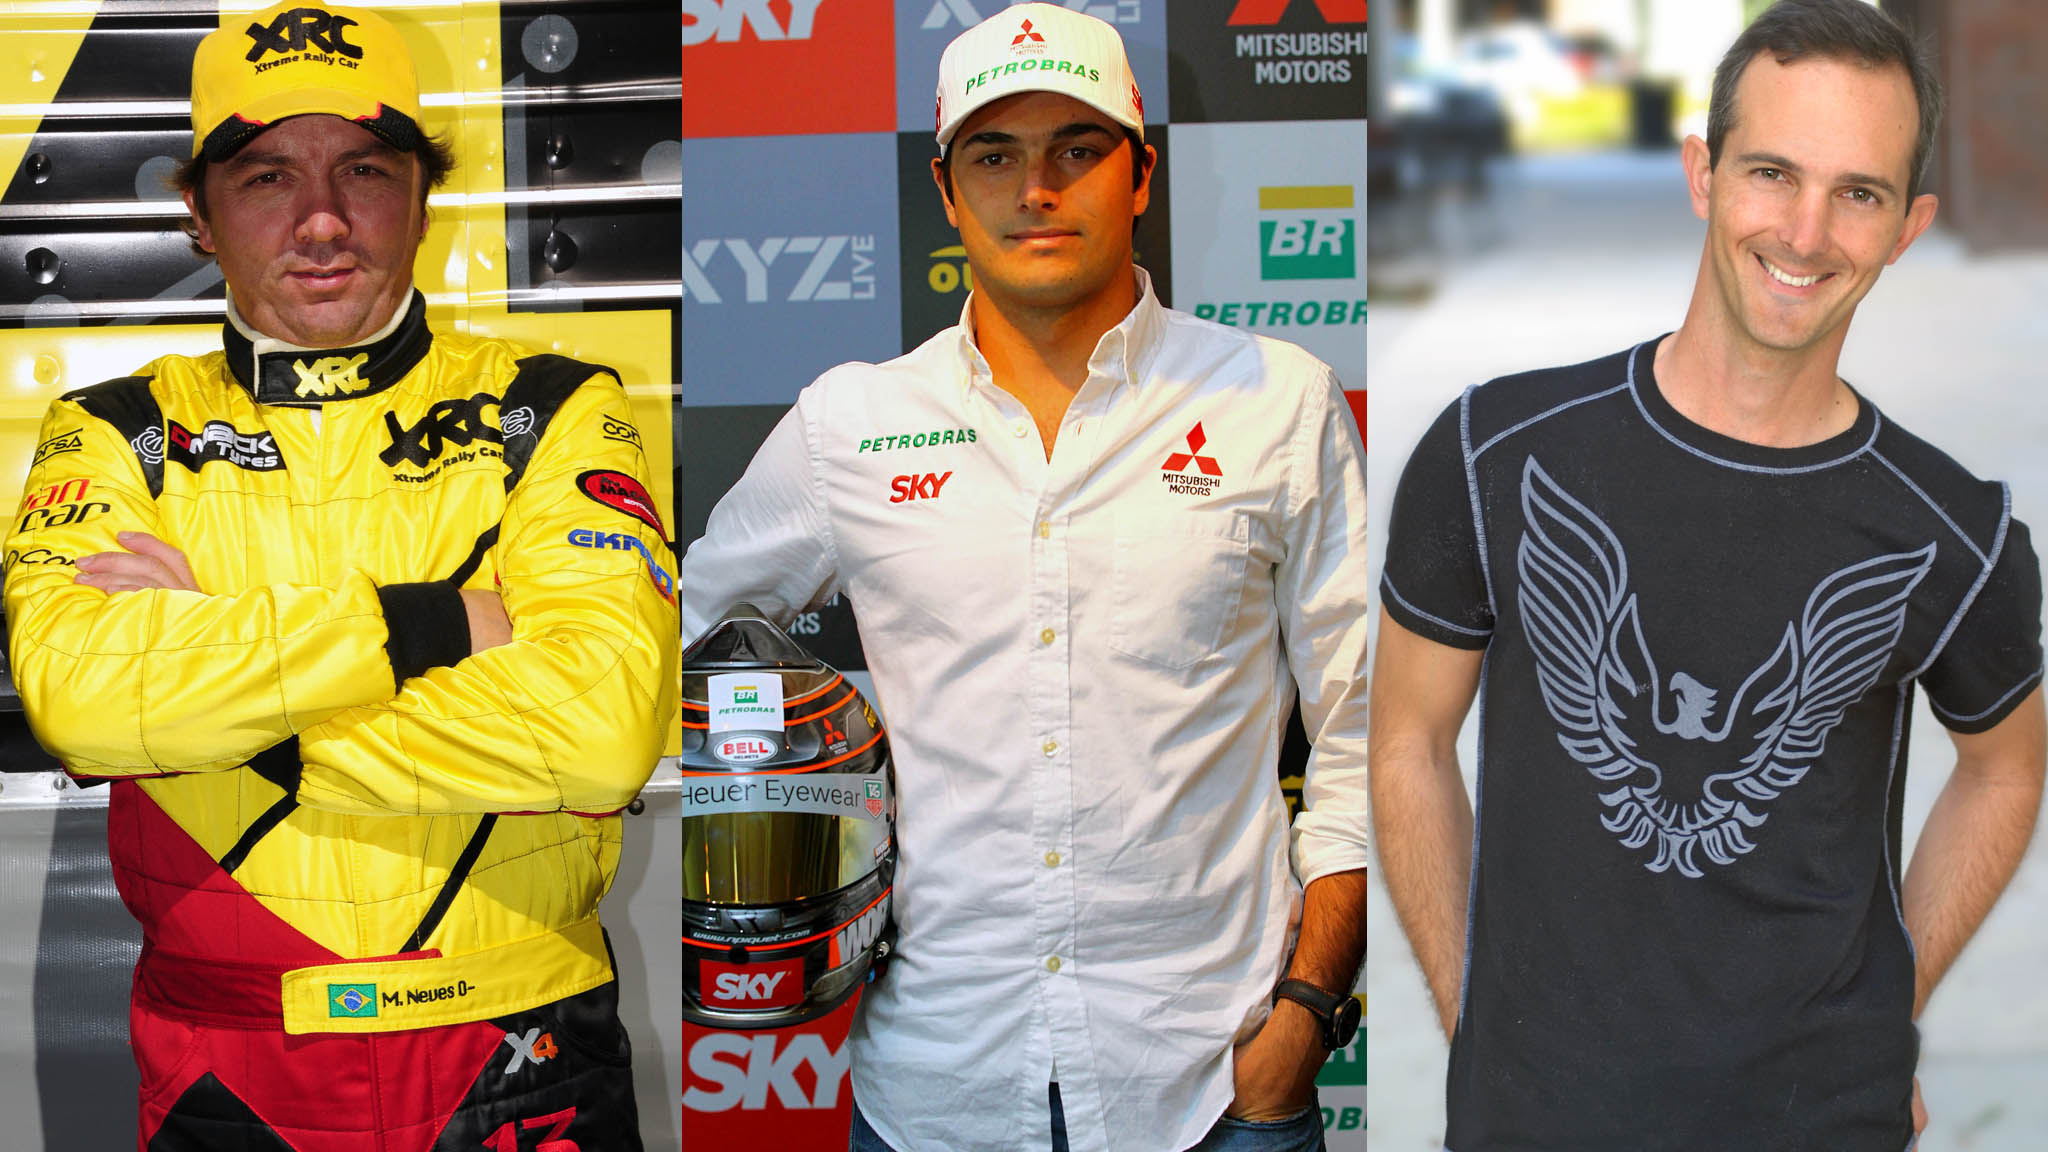 Mauricio Neves, Nelson Piquet Jr., Eduardo Marques Jr.